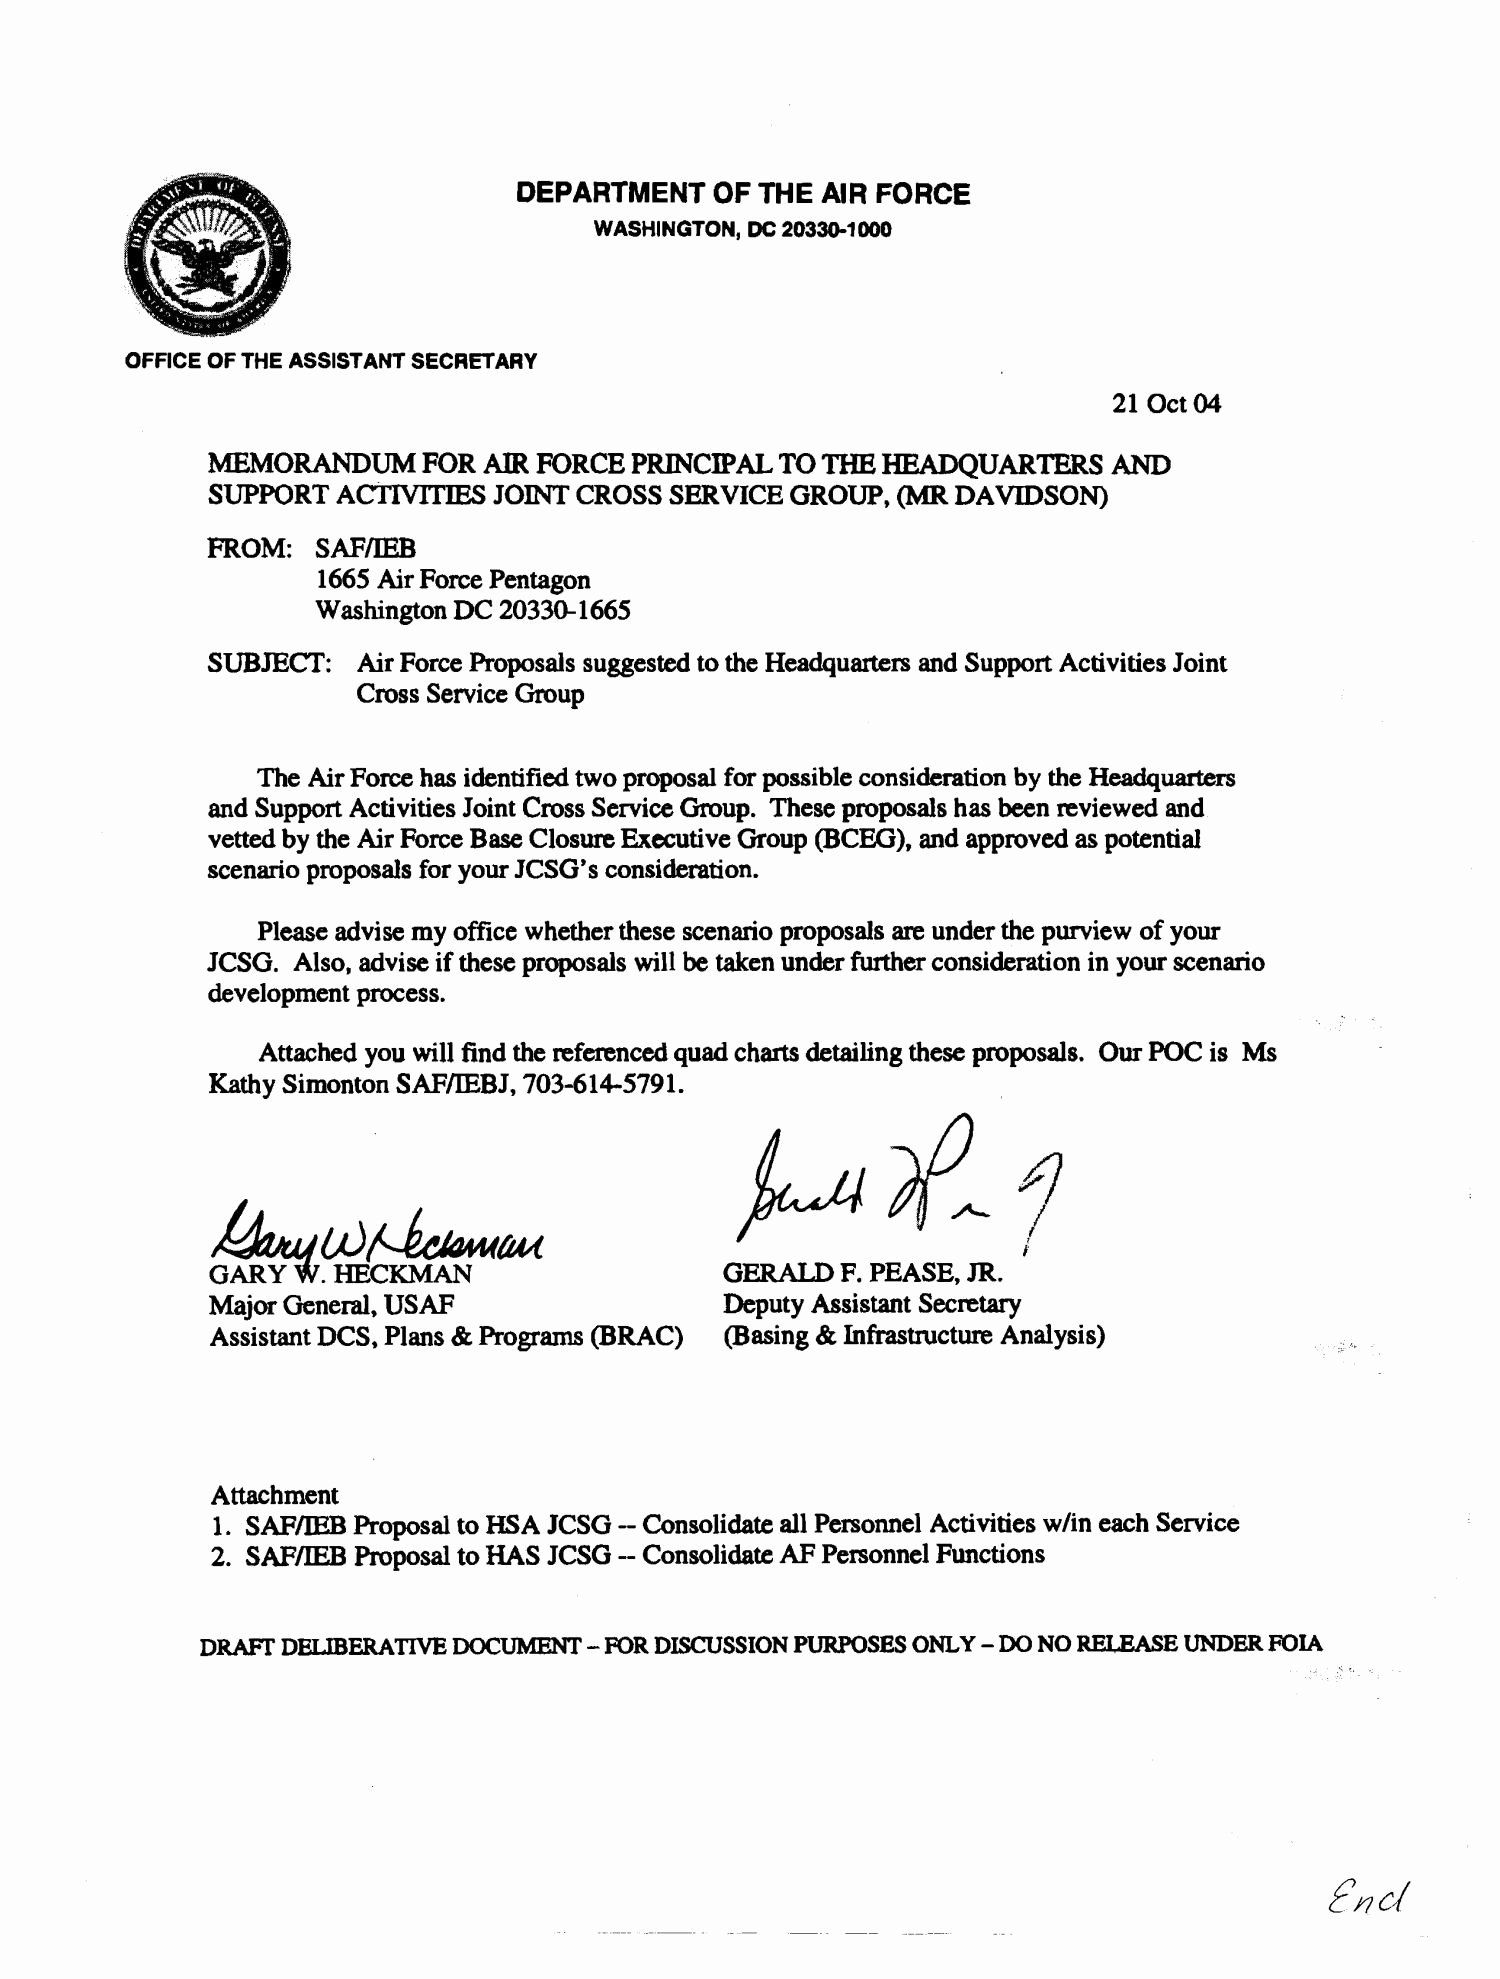 Air Force Memorandum Template New Memo On Air Force Proposals To Realign Military And Memorandum Template Memorandum Word Template